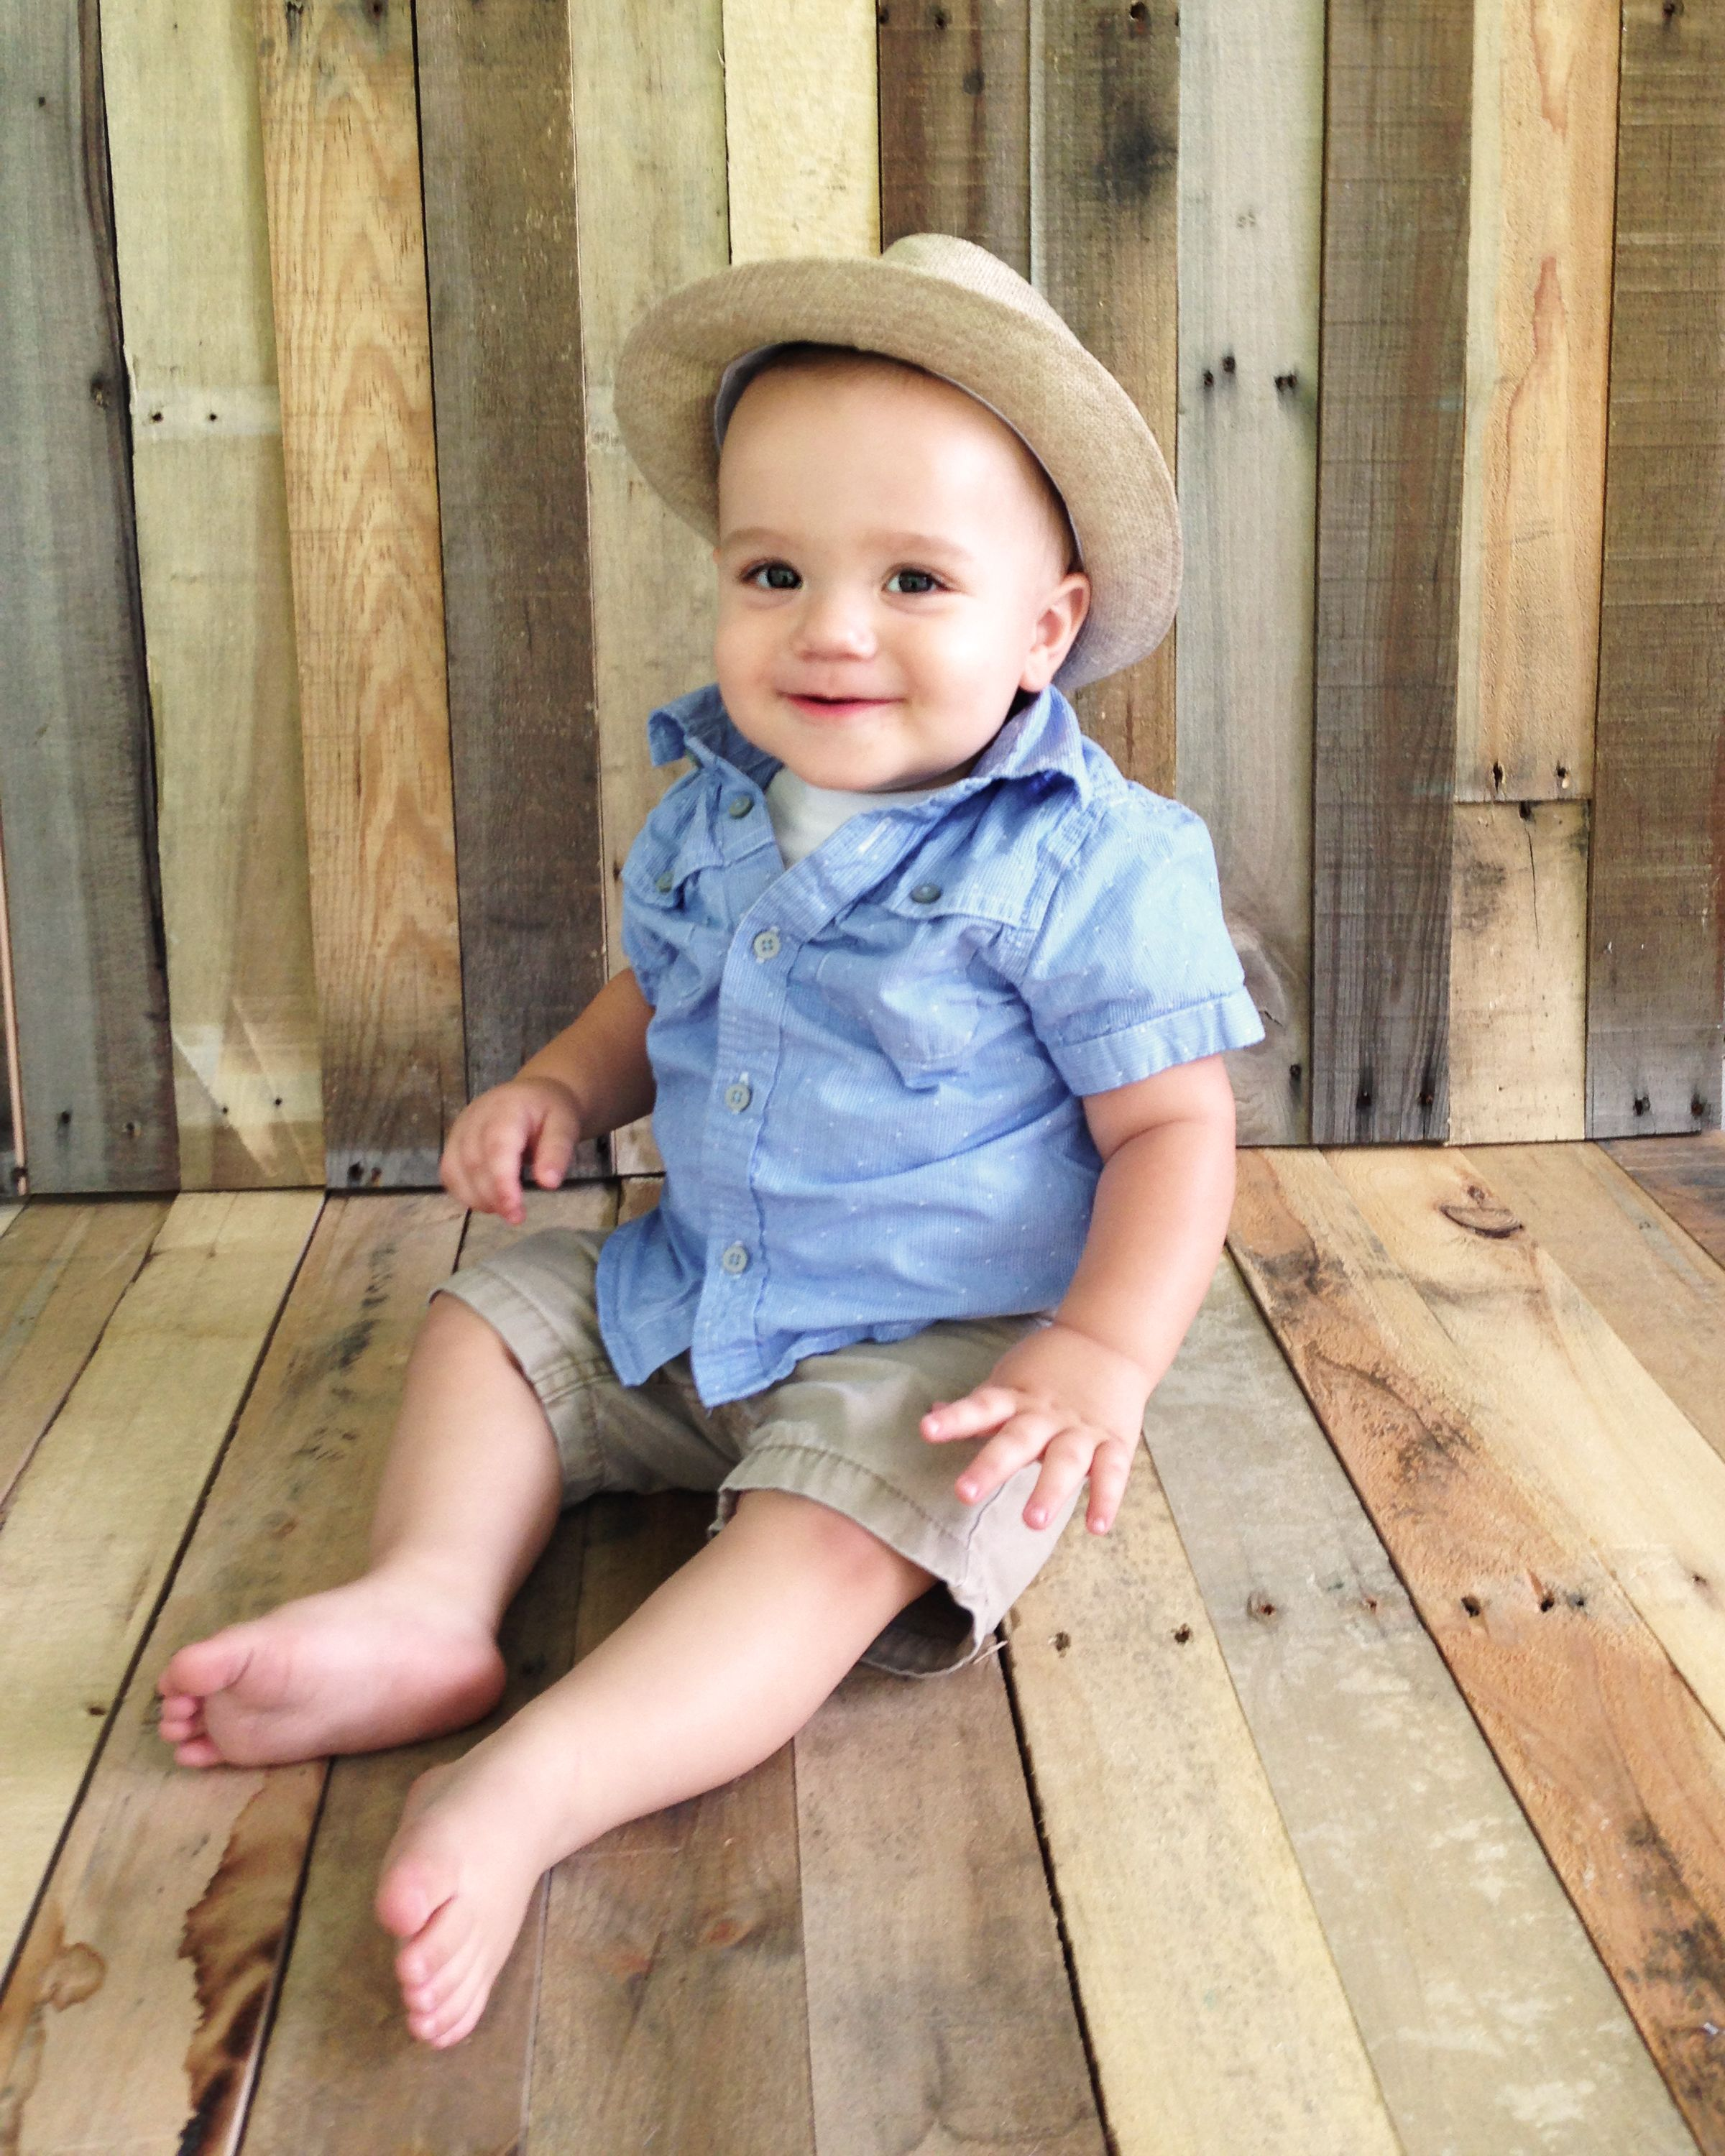 e6a7f276ace4 One Year Old Photos  5 Easy Ideas and Tips for the 1st Birthday ...